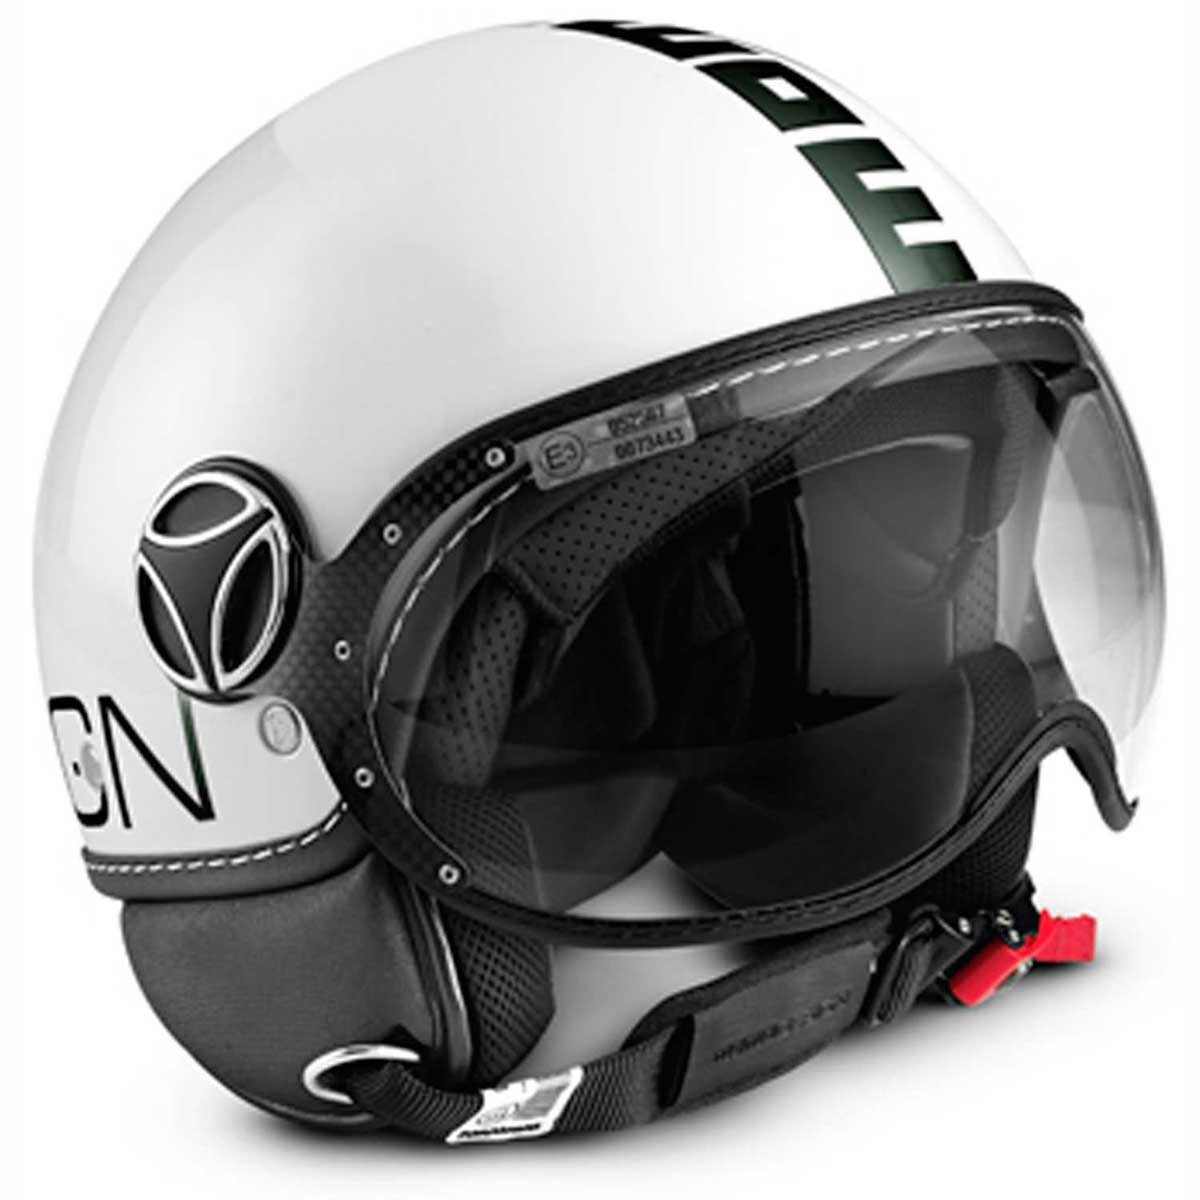 Momo FGTR Classic Open Face Motorcycle Helmet in White Glossy with Logo Black